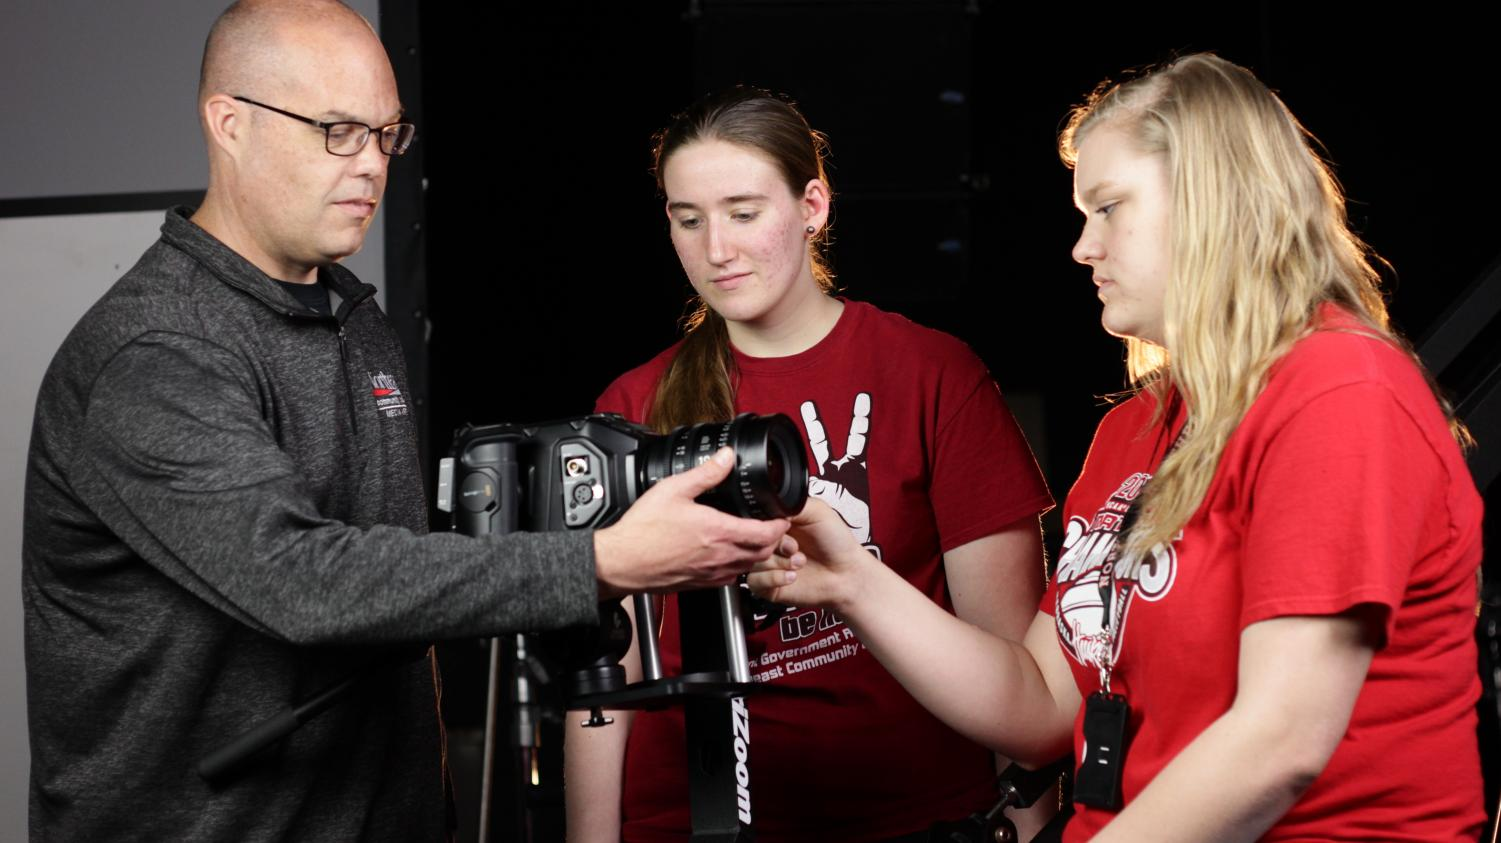 Brian Anderson, media arts - broadcasting instructor at Northeast Community College, explains camera and lens setting techniques to Emma Meisenheimer, Hartington, (center) and Madison Siedschlag, Pierce, students in the College's Media Arts program. (Courtesy Northeast Community College)